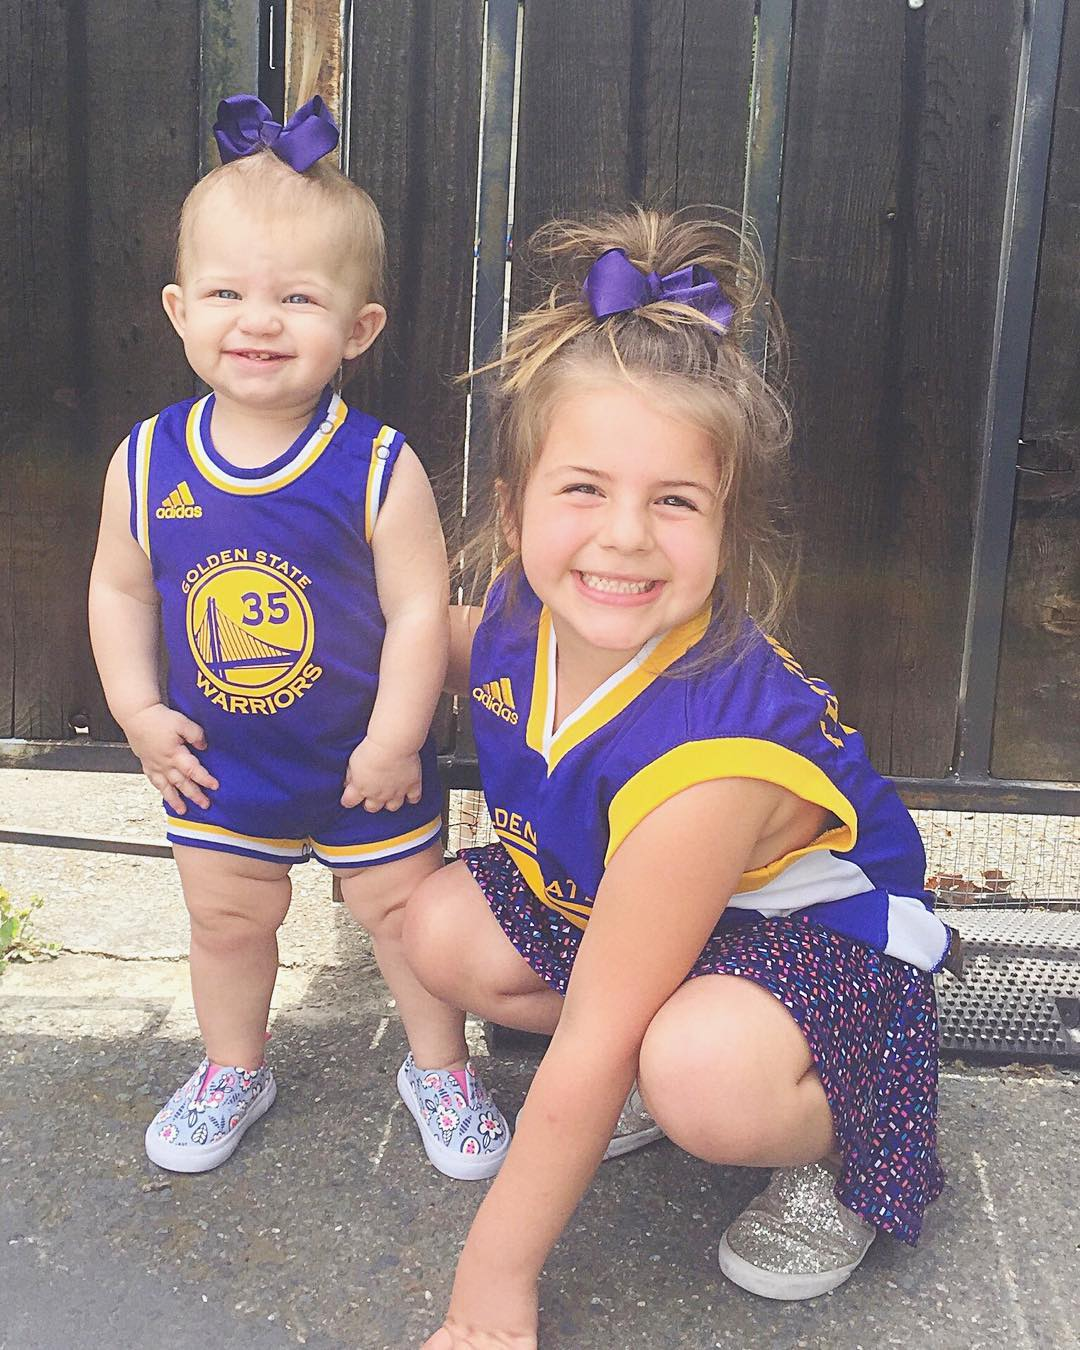 <div class='meta'><div class='origin-logo' data-origin='none'></div><span class='caption-text' data-credit='Photo submitted to KGO-TV by @iamjulesreid/Instagram'>Warriors fans show their spirit during the 2017-2018 season. Share your photos using #DubsOn7 and you may see them online or on TV!</span></div>